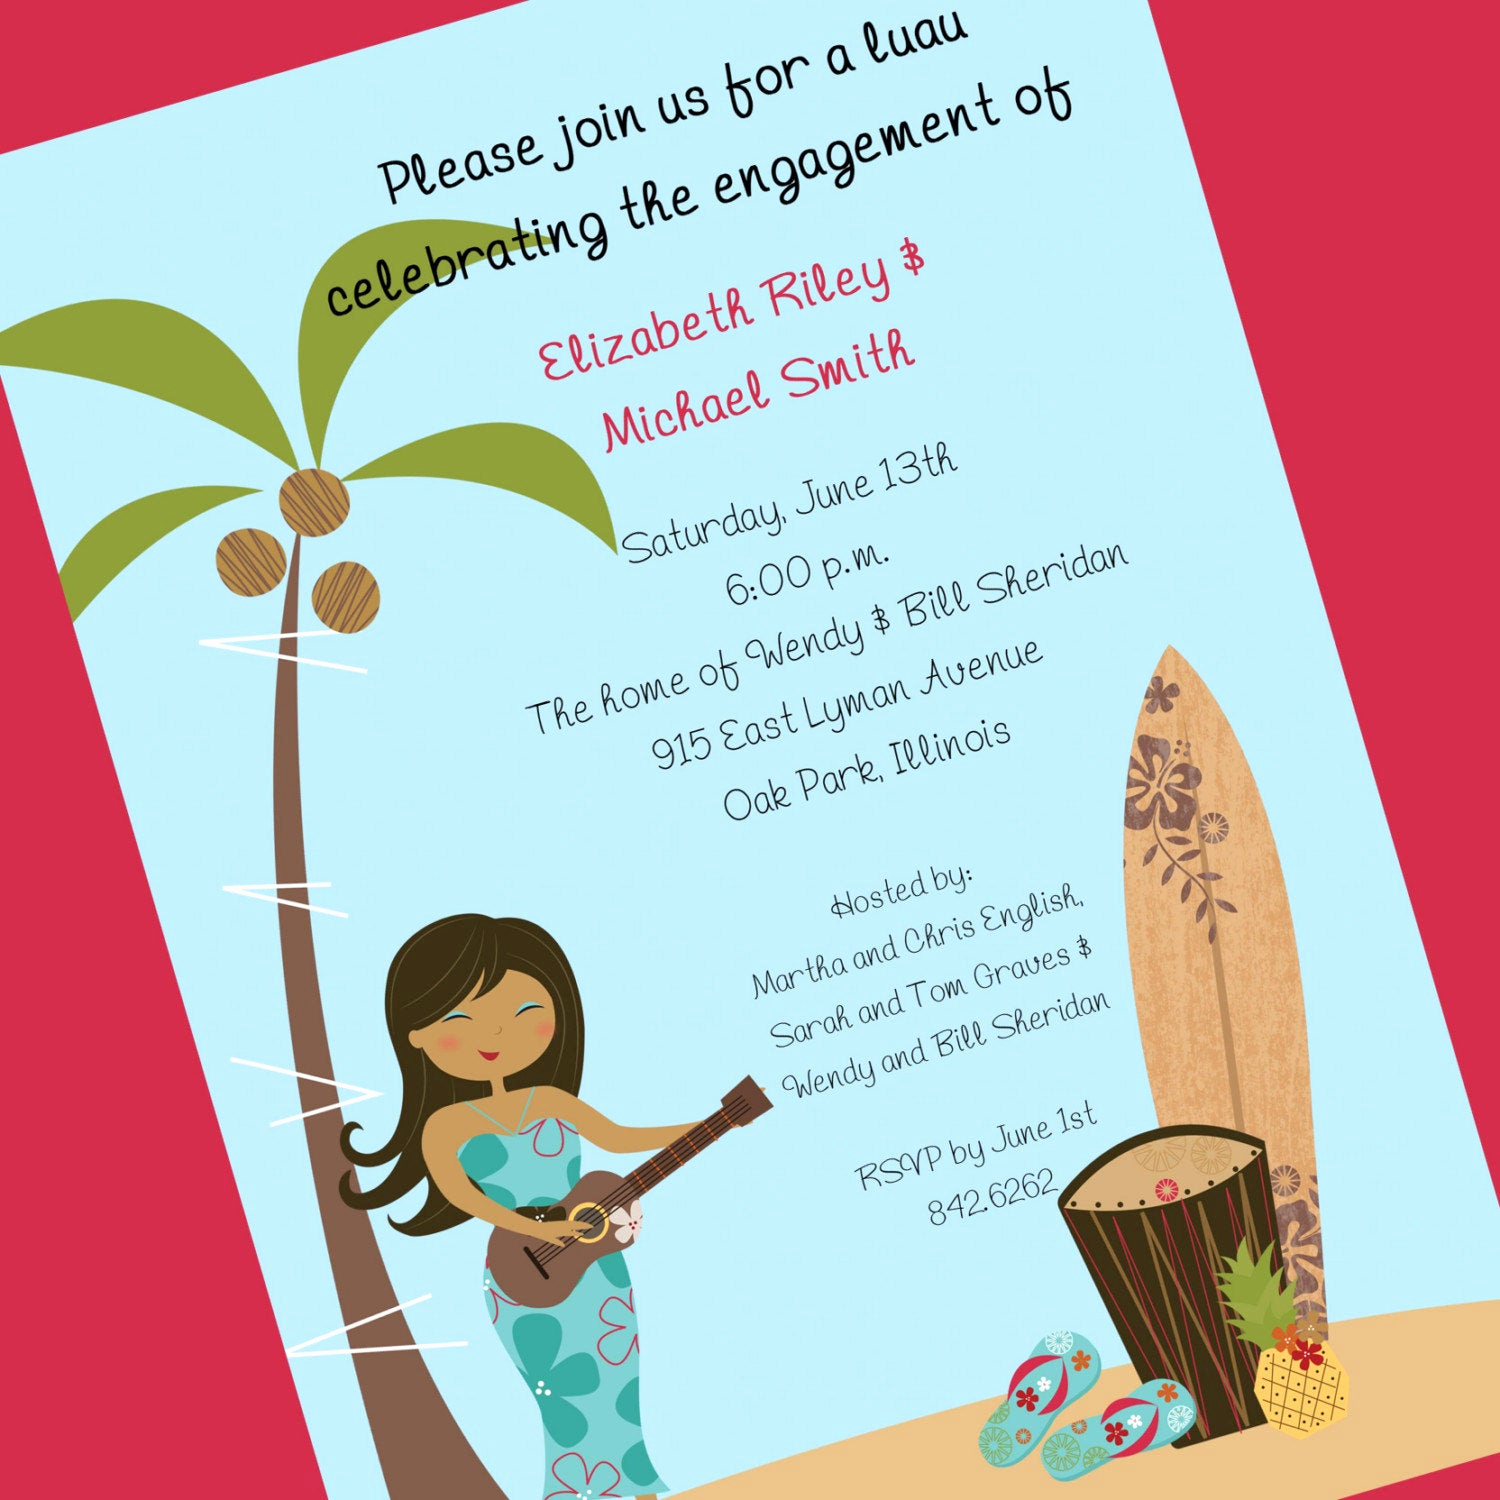 Luau Birthday Invitation Wording Lovely Luau Invitation Custom Wording 12 Invitations and Envelopes